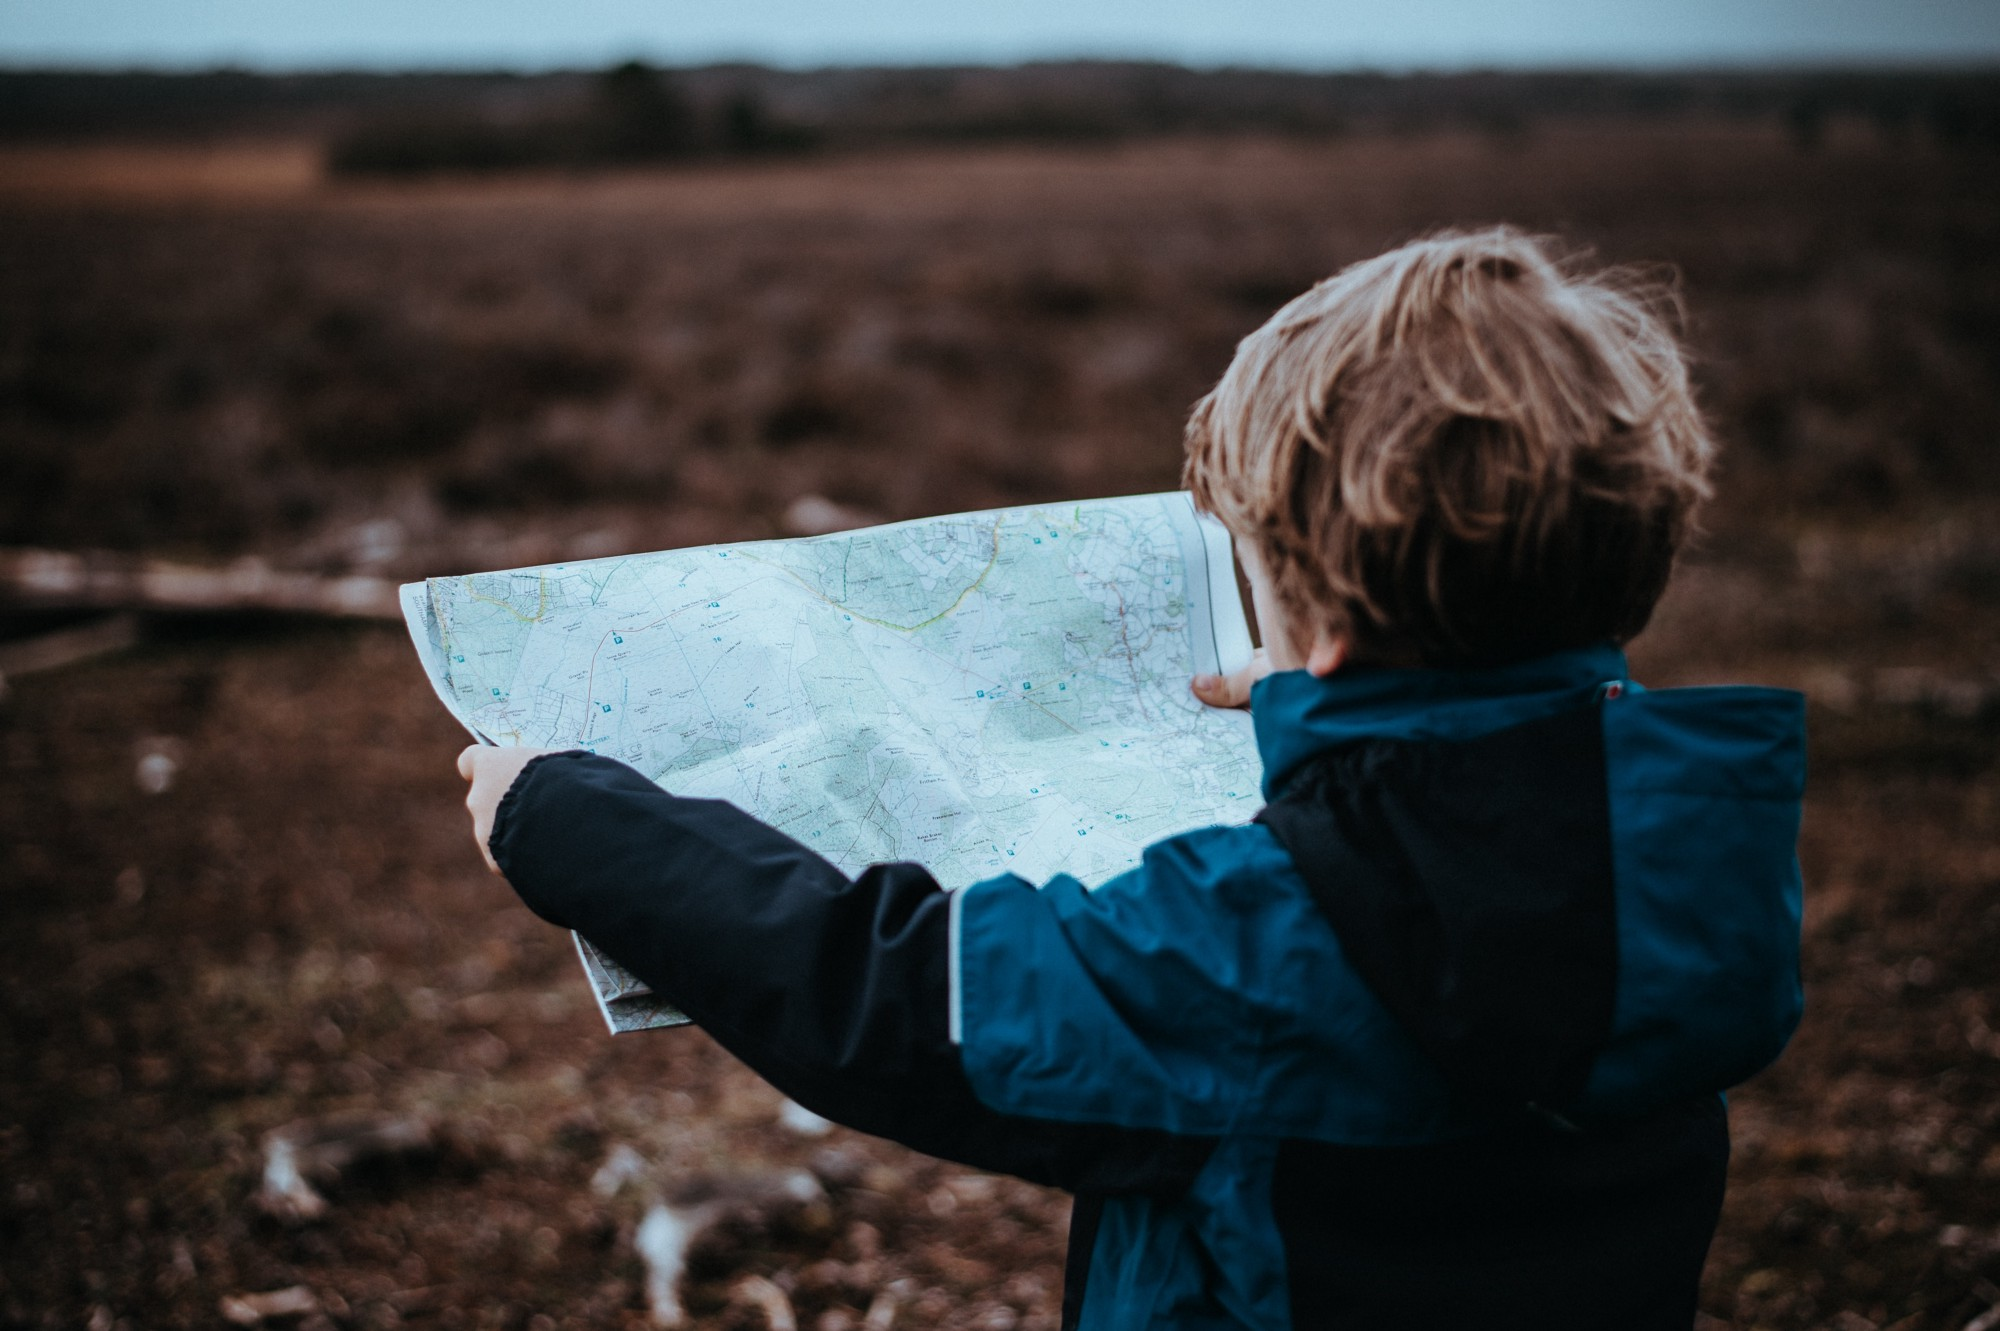 Boy looking at a map.